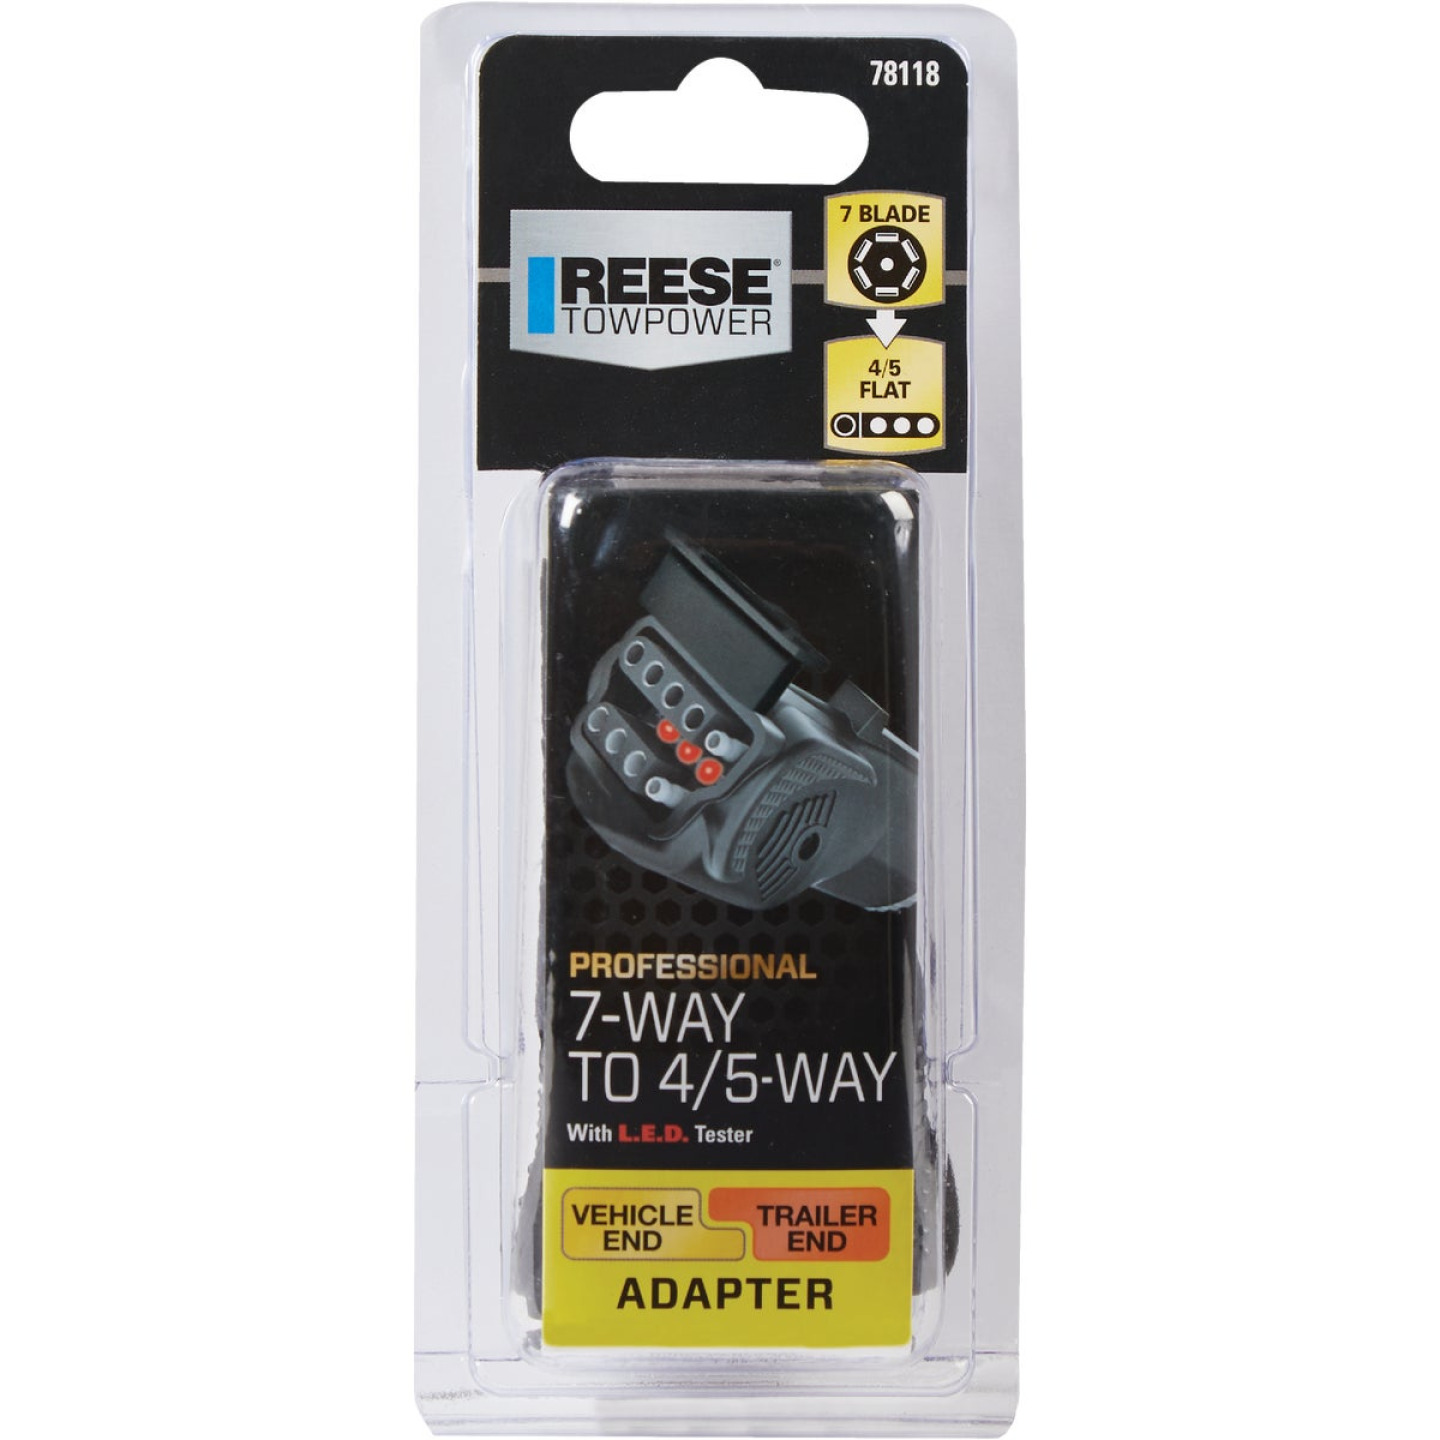 Reese Towpower Professional 7-Way to 4/5-Flat Plug-In Adapter w/LED Circuit Tester Image 2